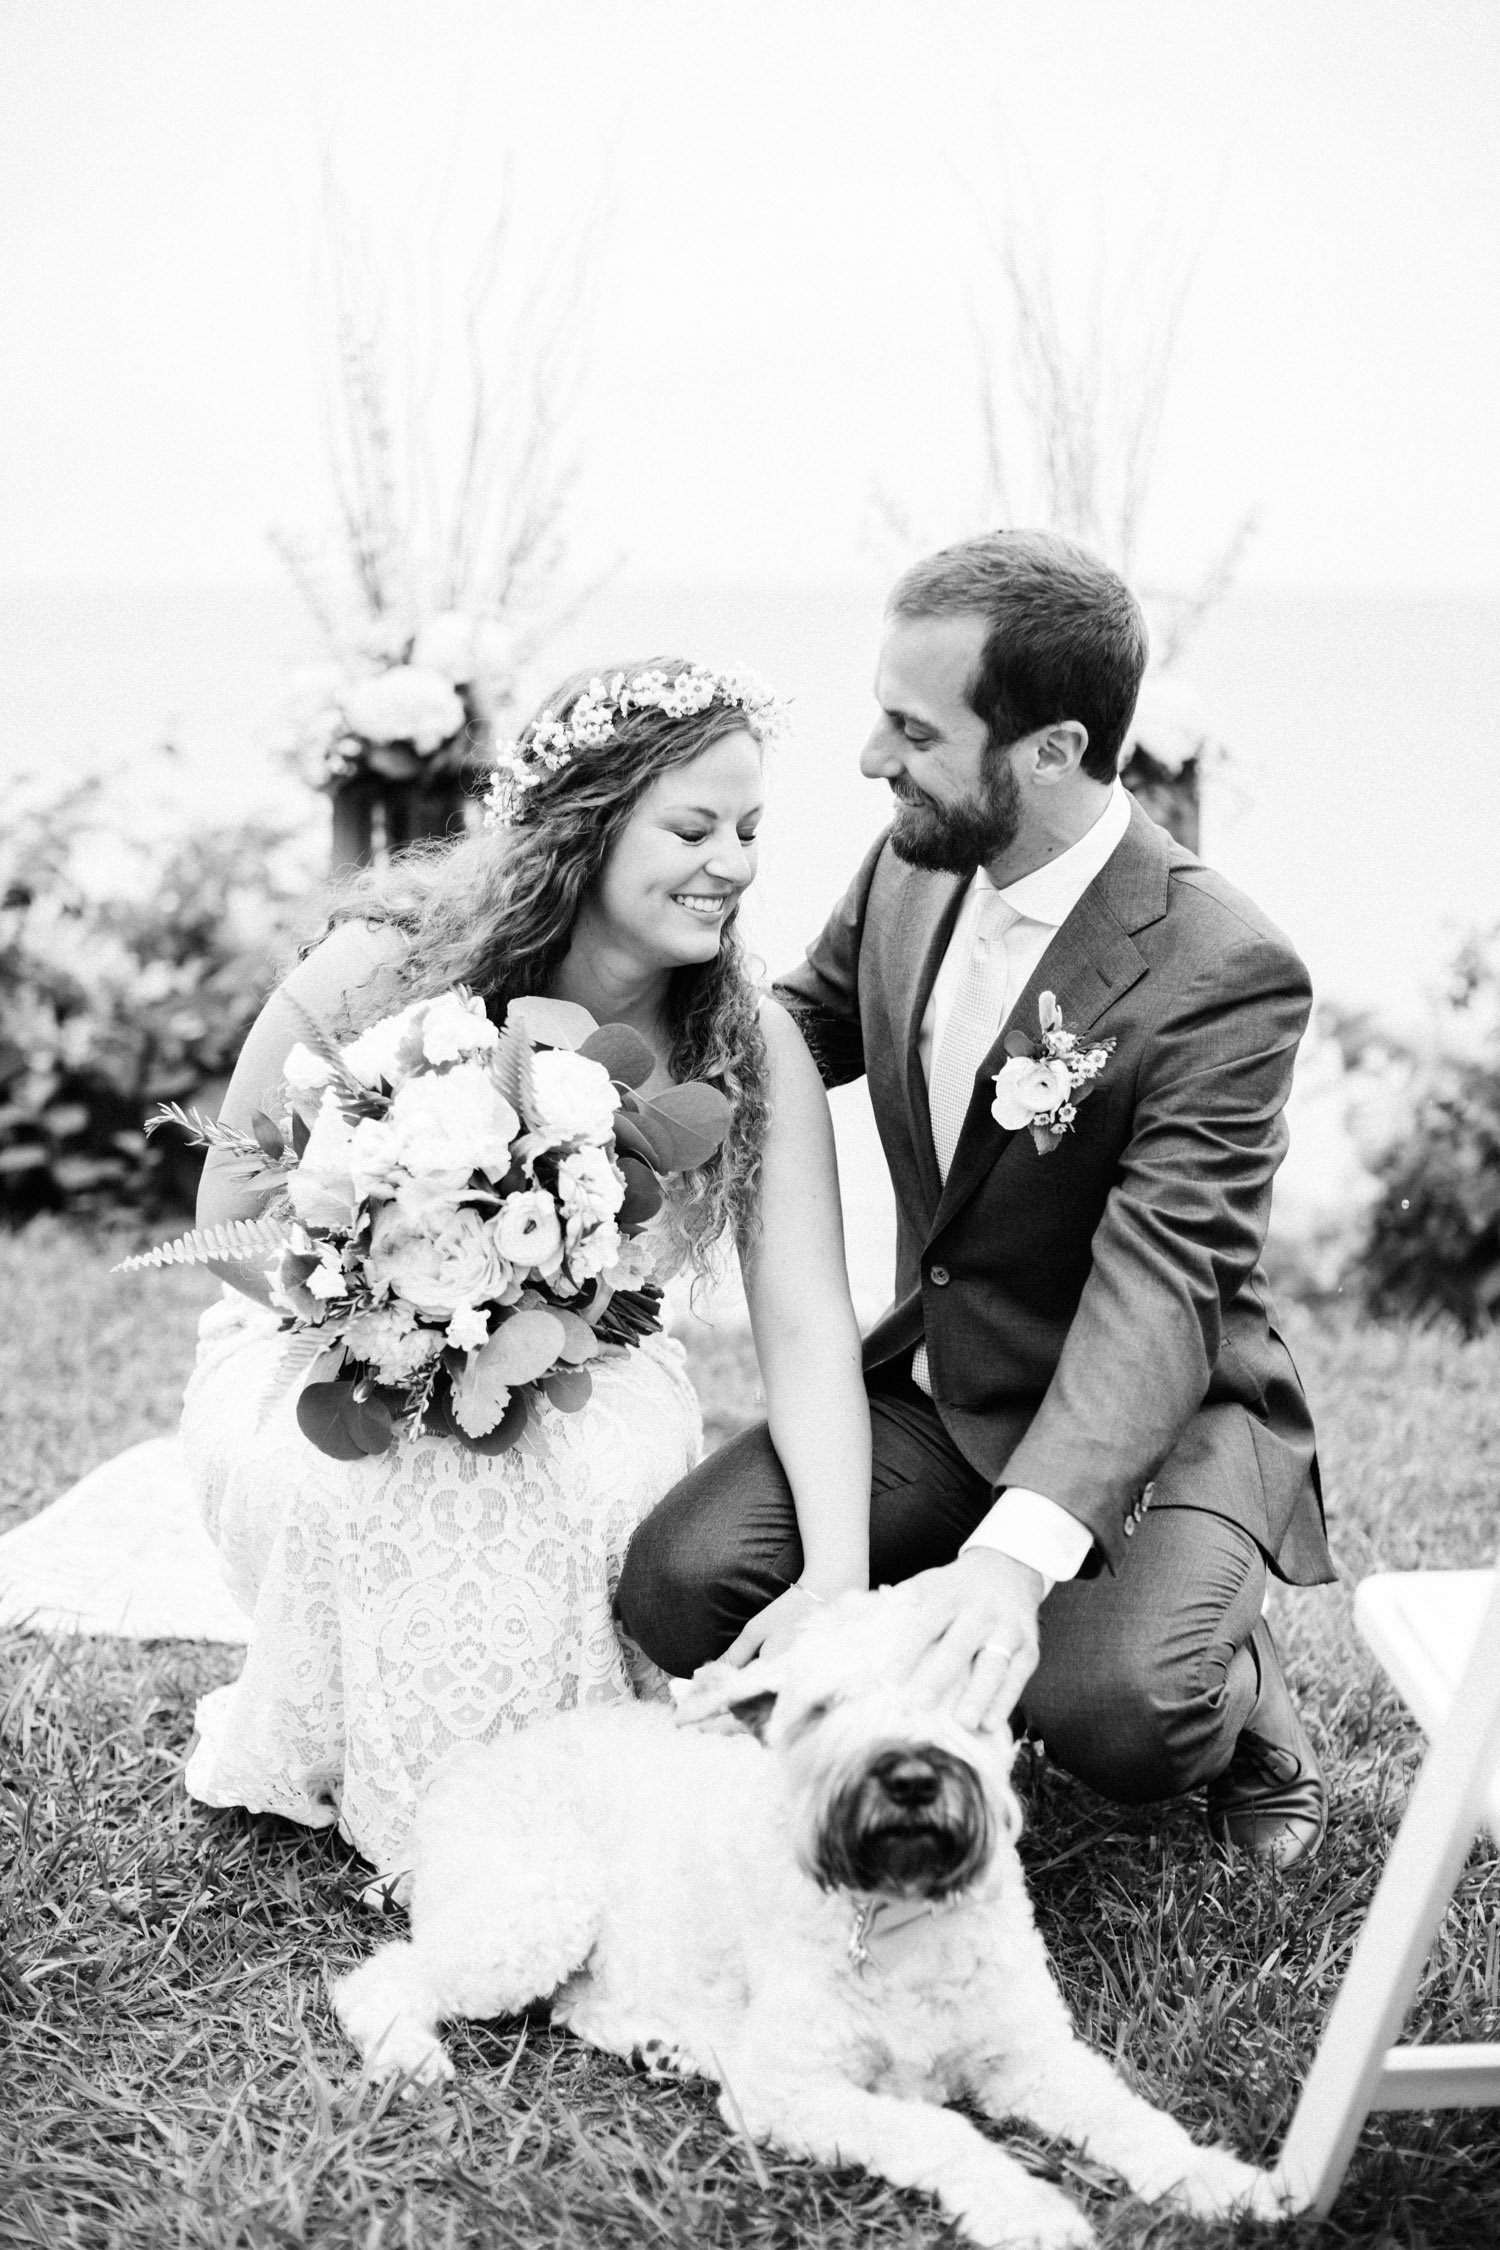 A joyful, candid moment is caught as a newlywed couple pause for a photo with their dog